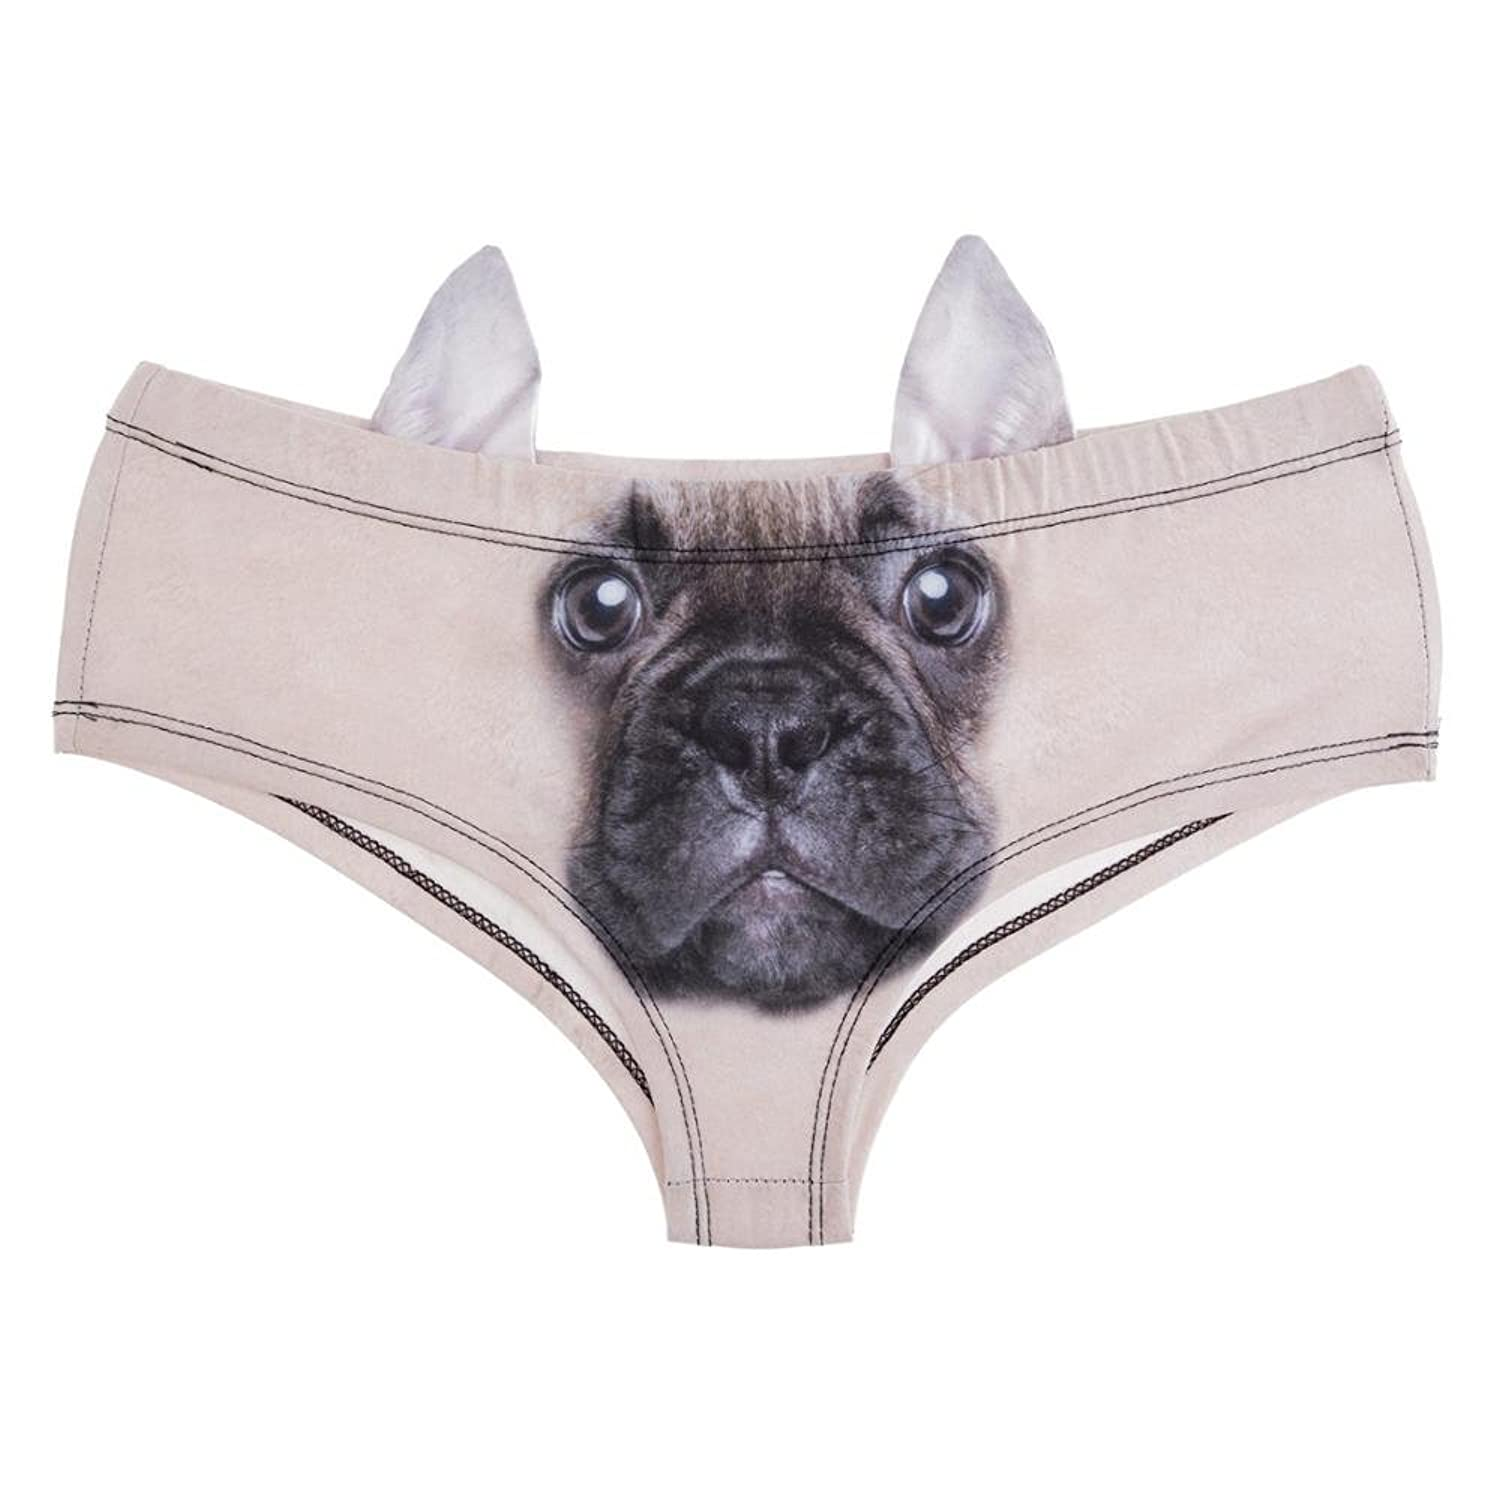 Amazon.com: Animal Women Ear Underwear French Bulldog 3D Printing Sexy Panties Woman Lingerie Underwear: Clothing